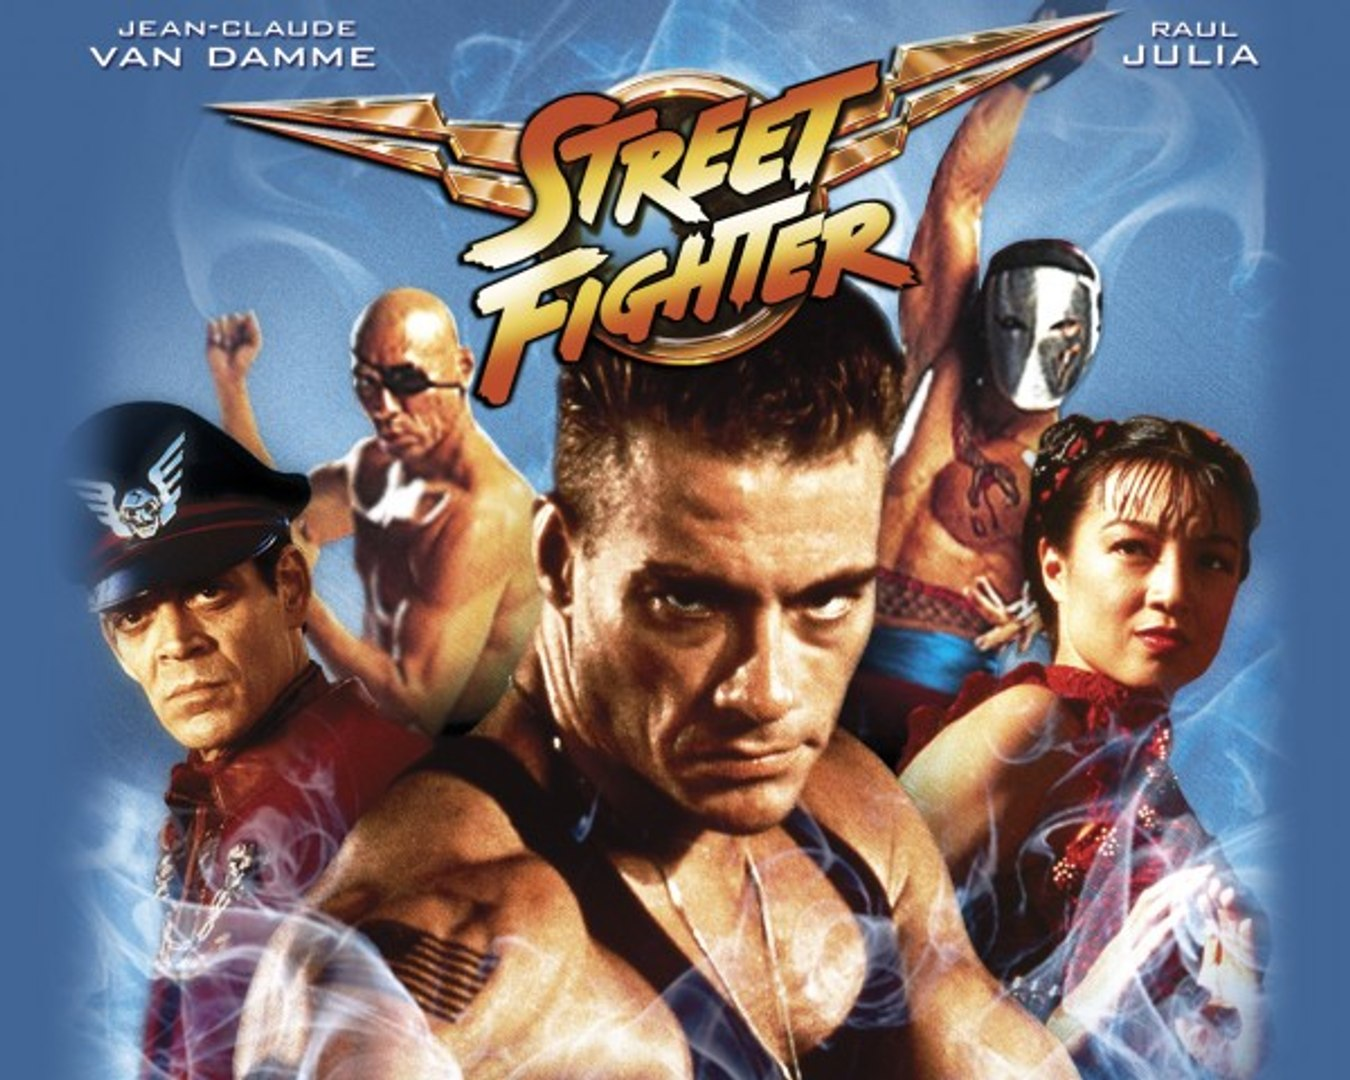 Street Fighter 1994 Full Movie In Hd Quality Video Dailymotion